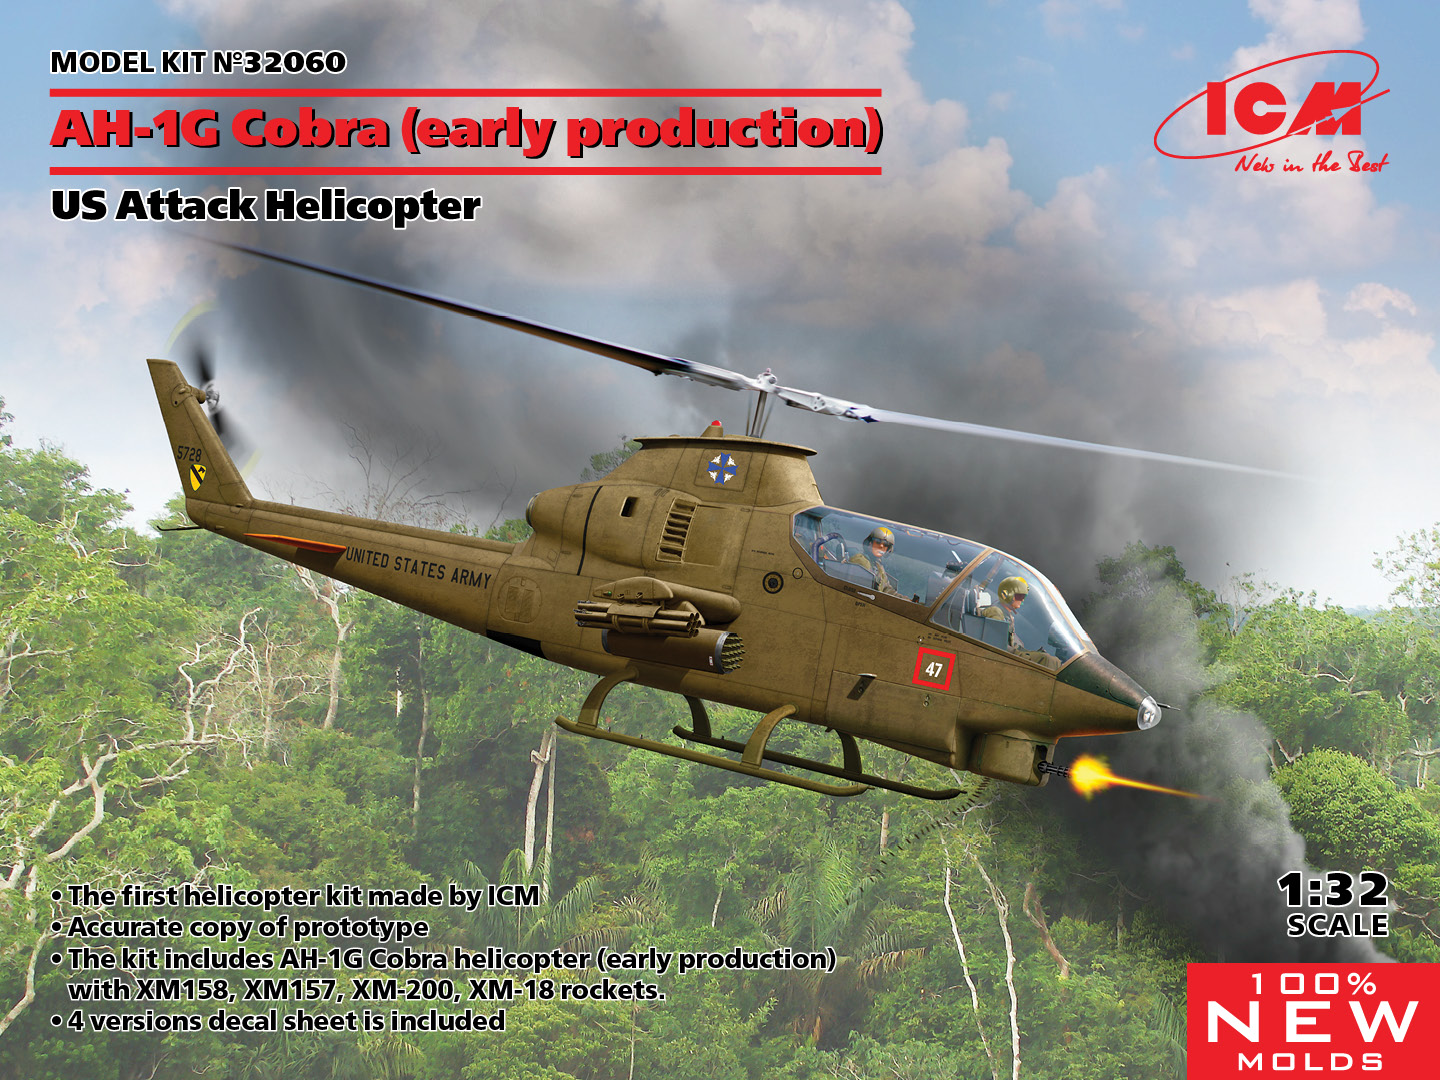 ICM 1/32 AH-1G Cobra (early production), US Attack Helicopter (100% new molds)